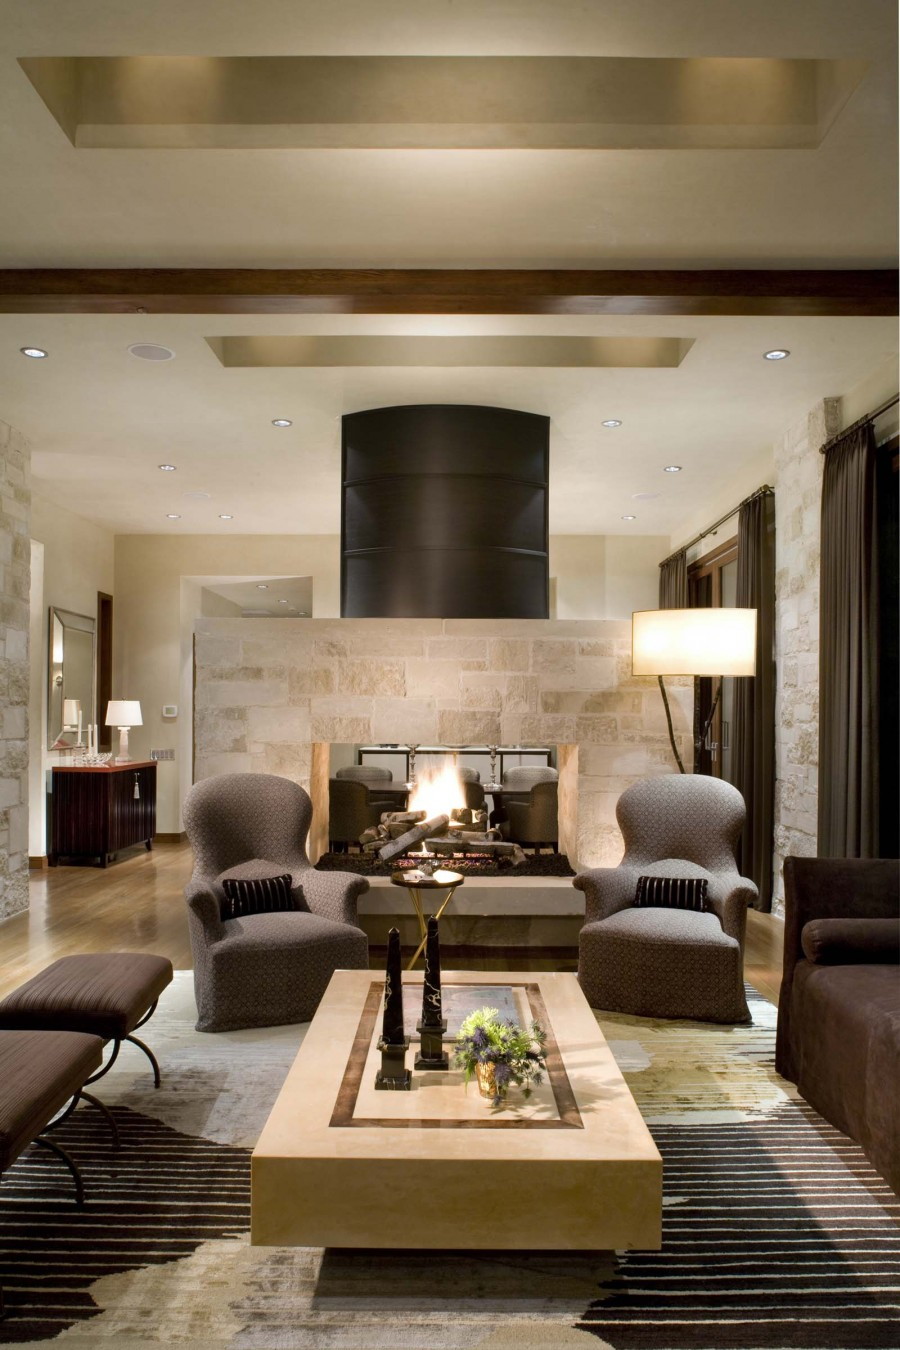 16 fabulous earth tones living room designs decoholic for Living room fireplace designs